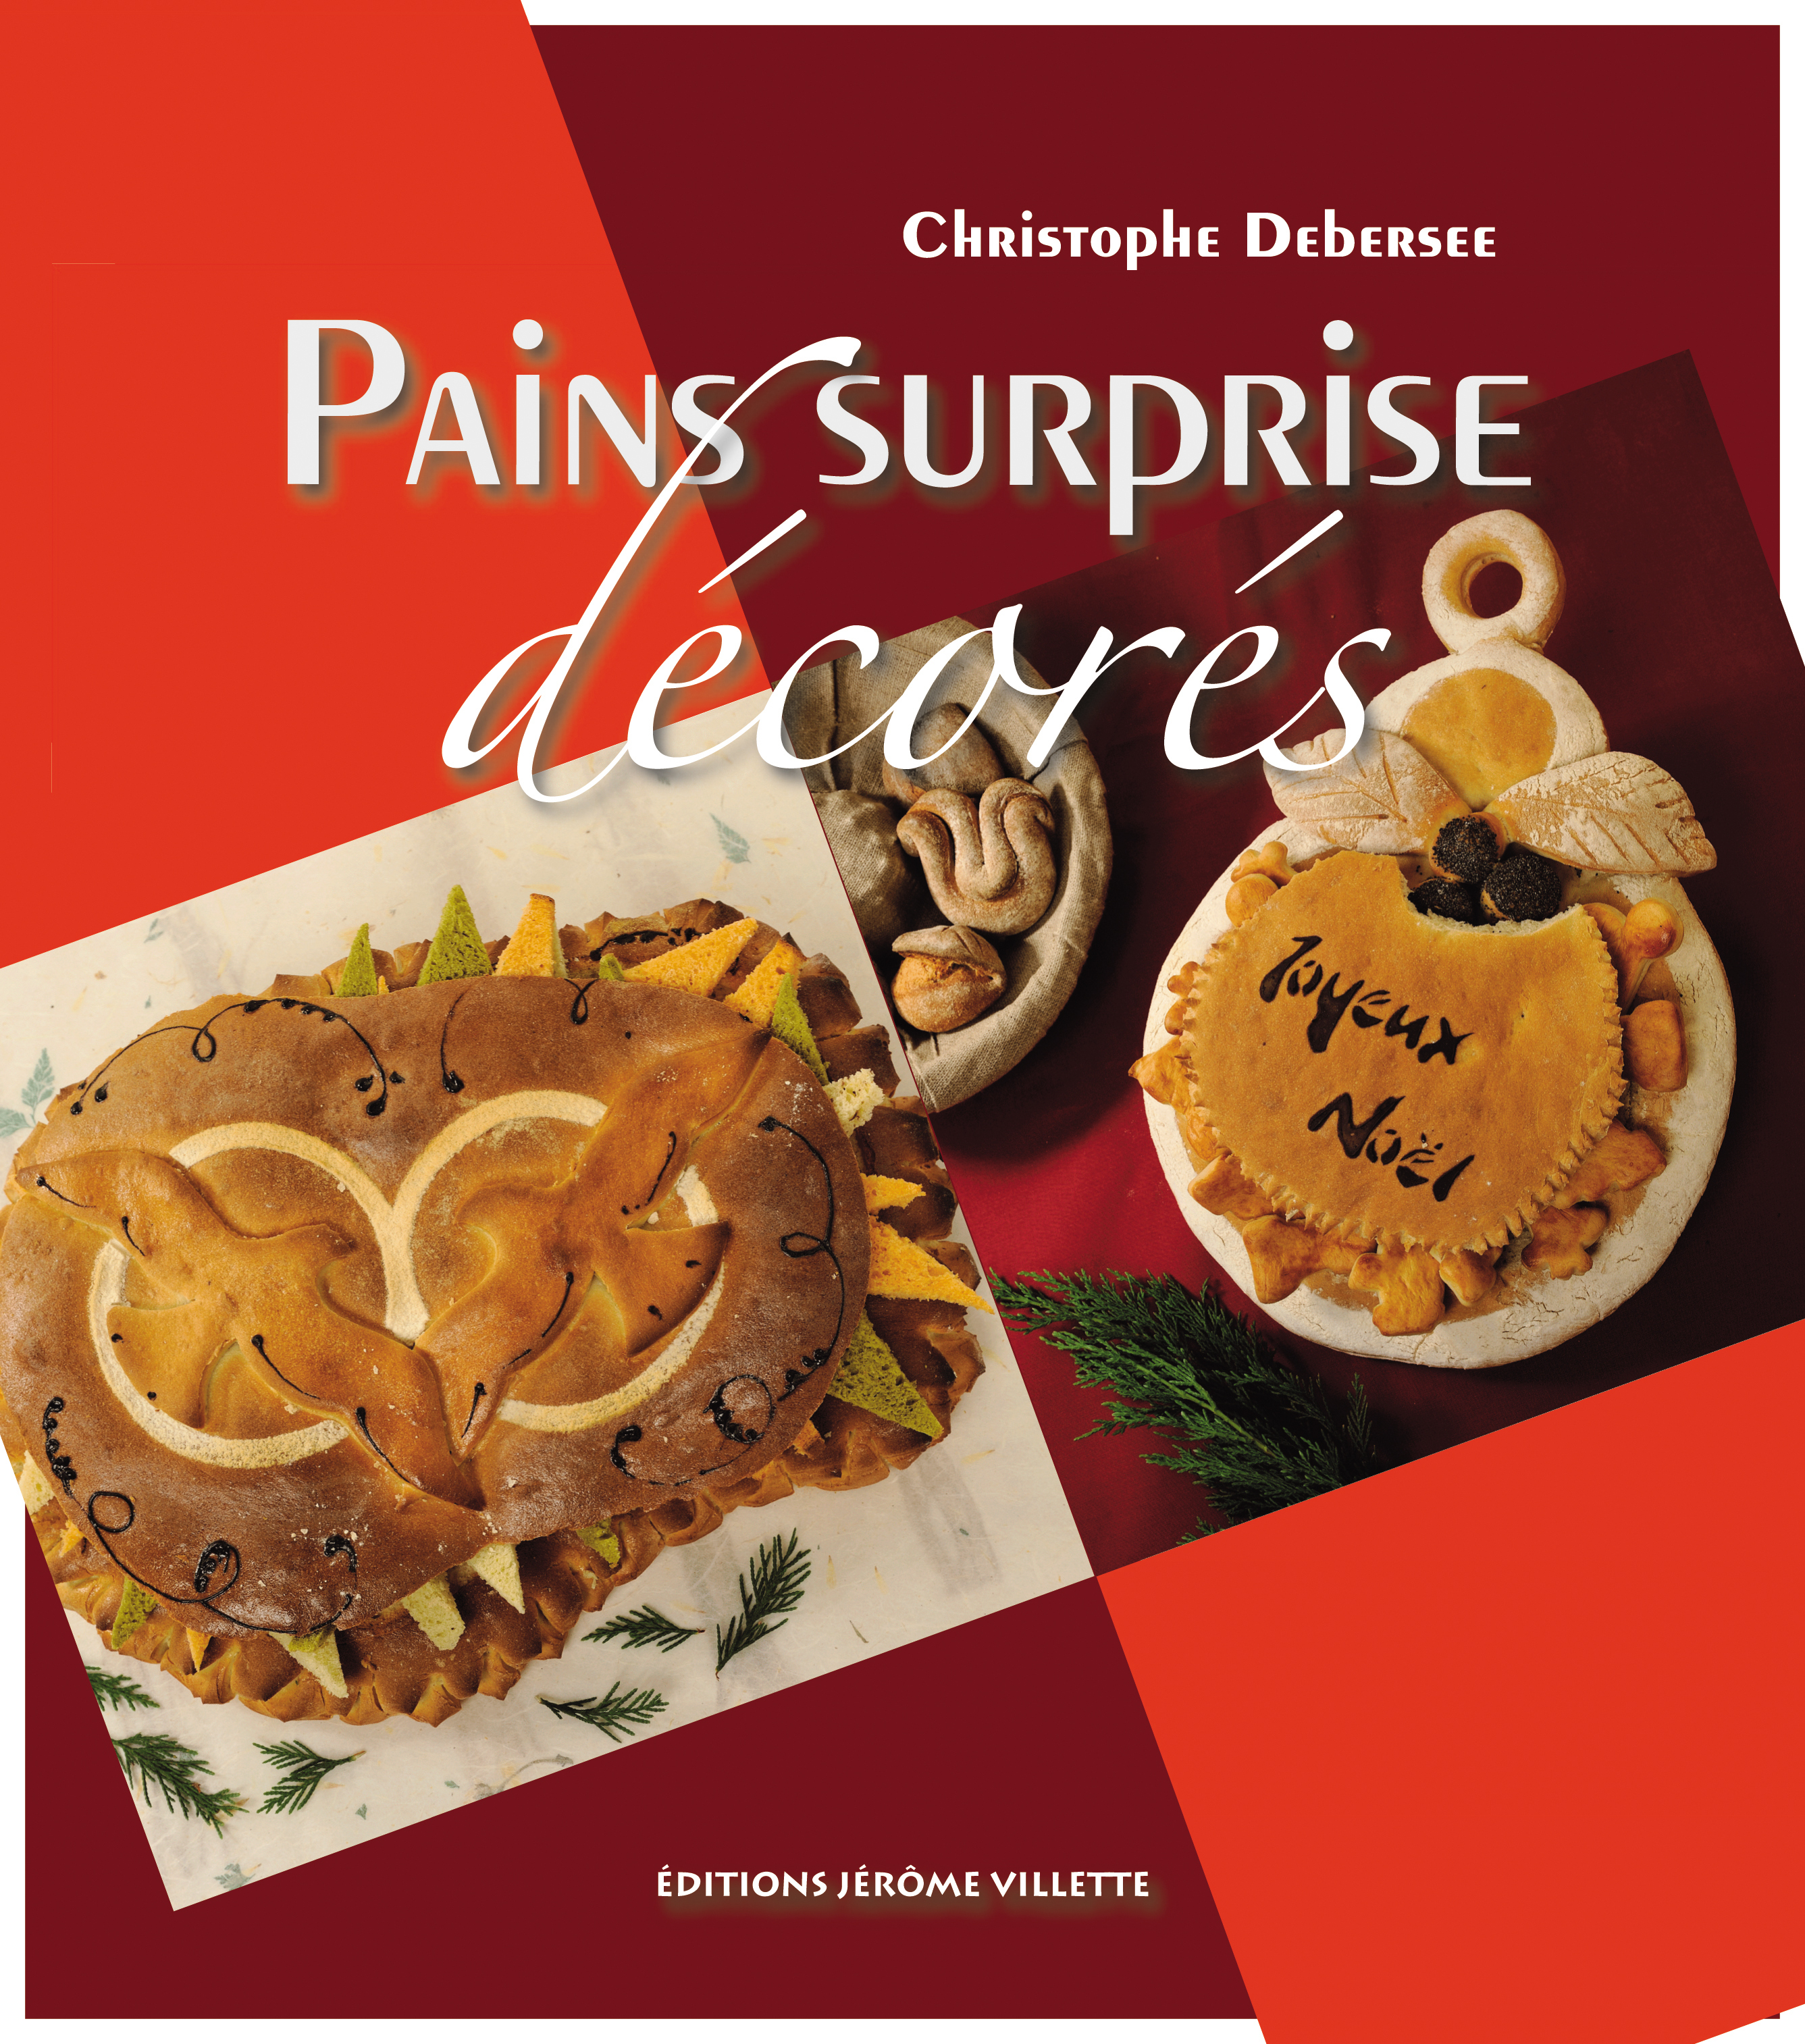 PAINS SURPRISES DECORES